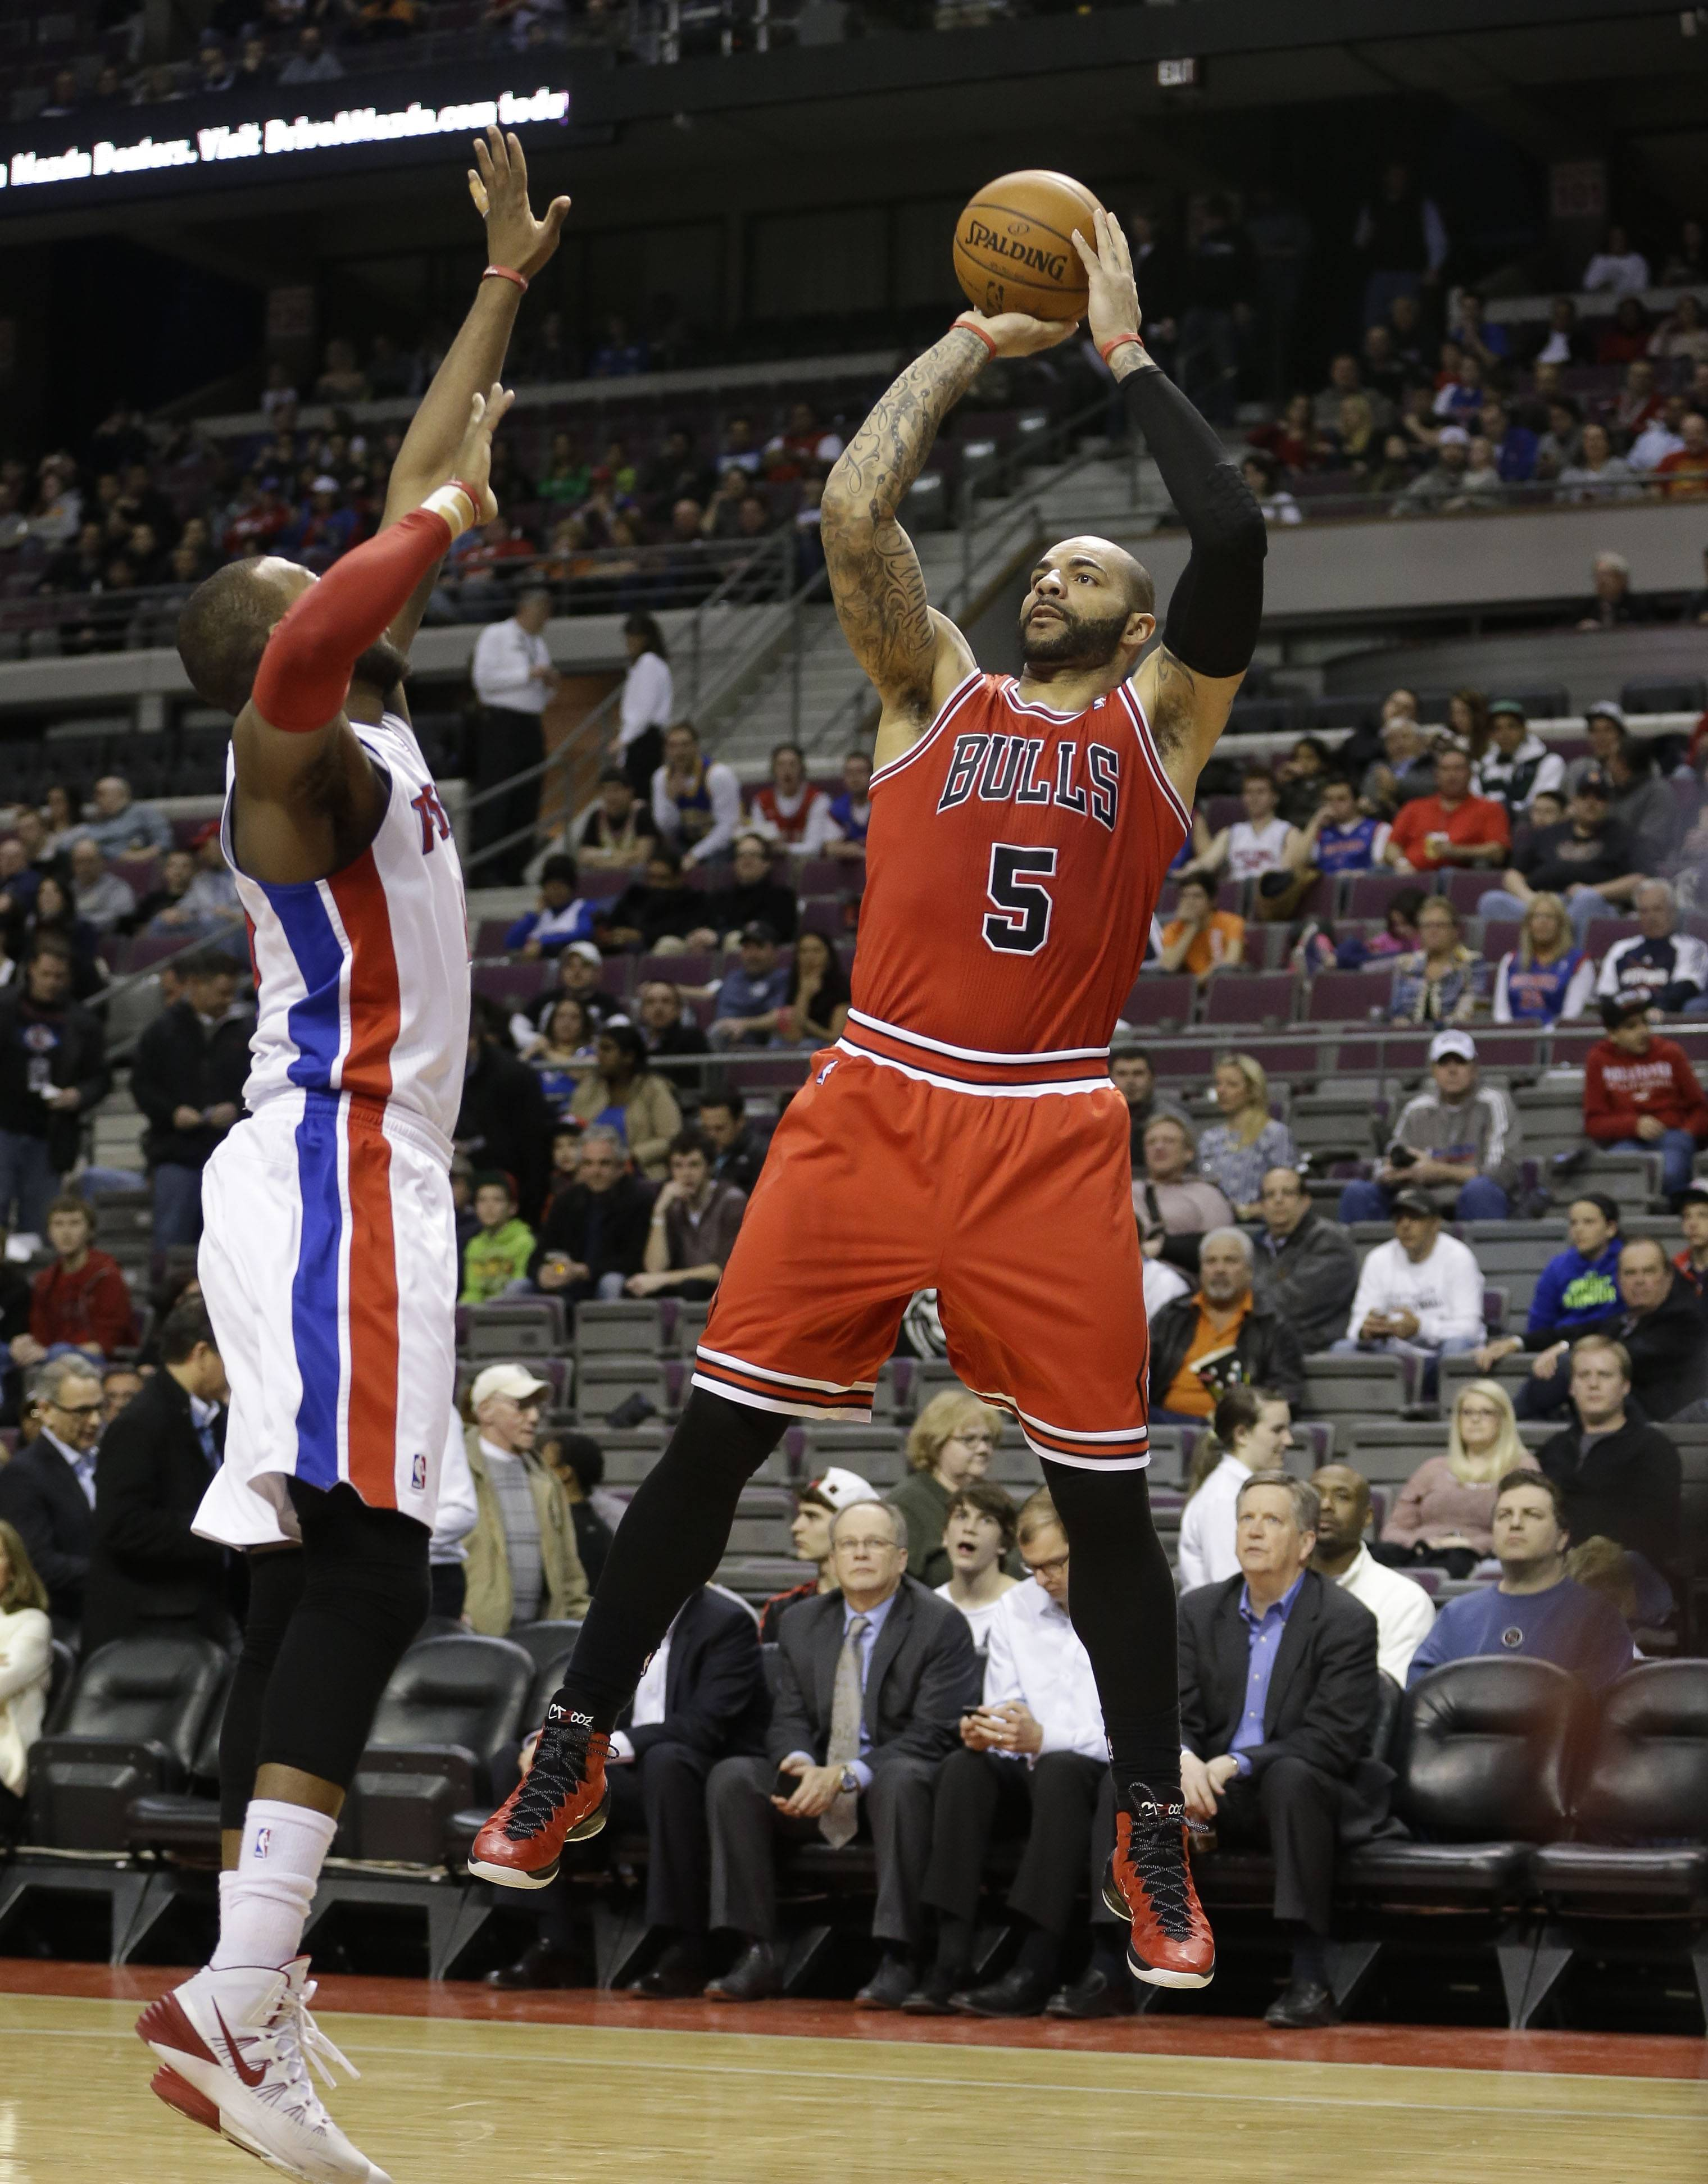 Bulls forward Carlos Boozer (5) is averaging 14.2 points per game and 8.5 rebounds per game this season, just down slightly from his career averages of 16.7 ppg and 9.8 rpg.